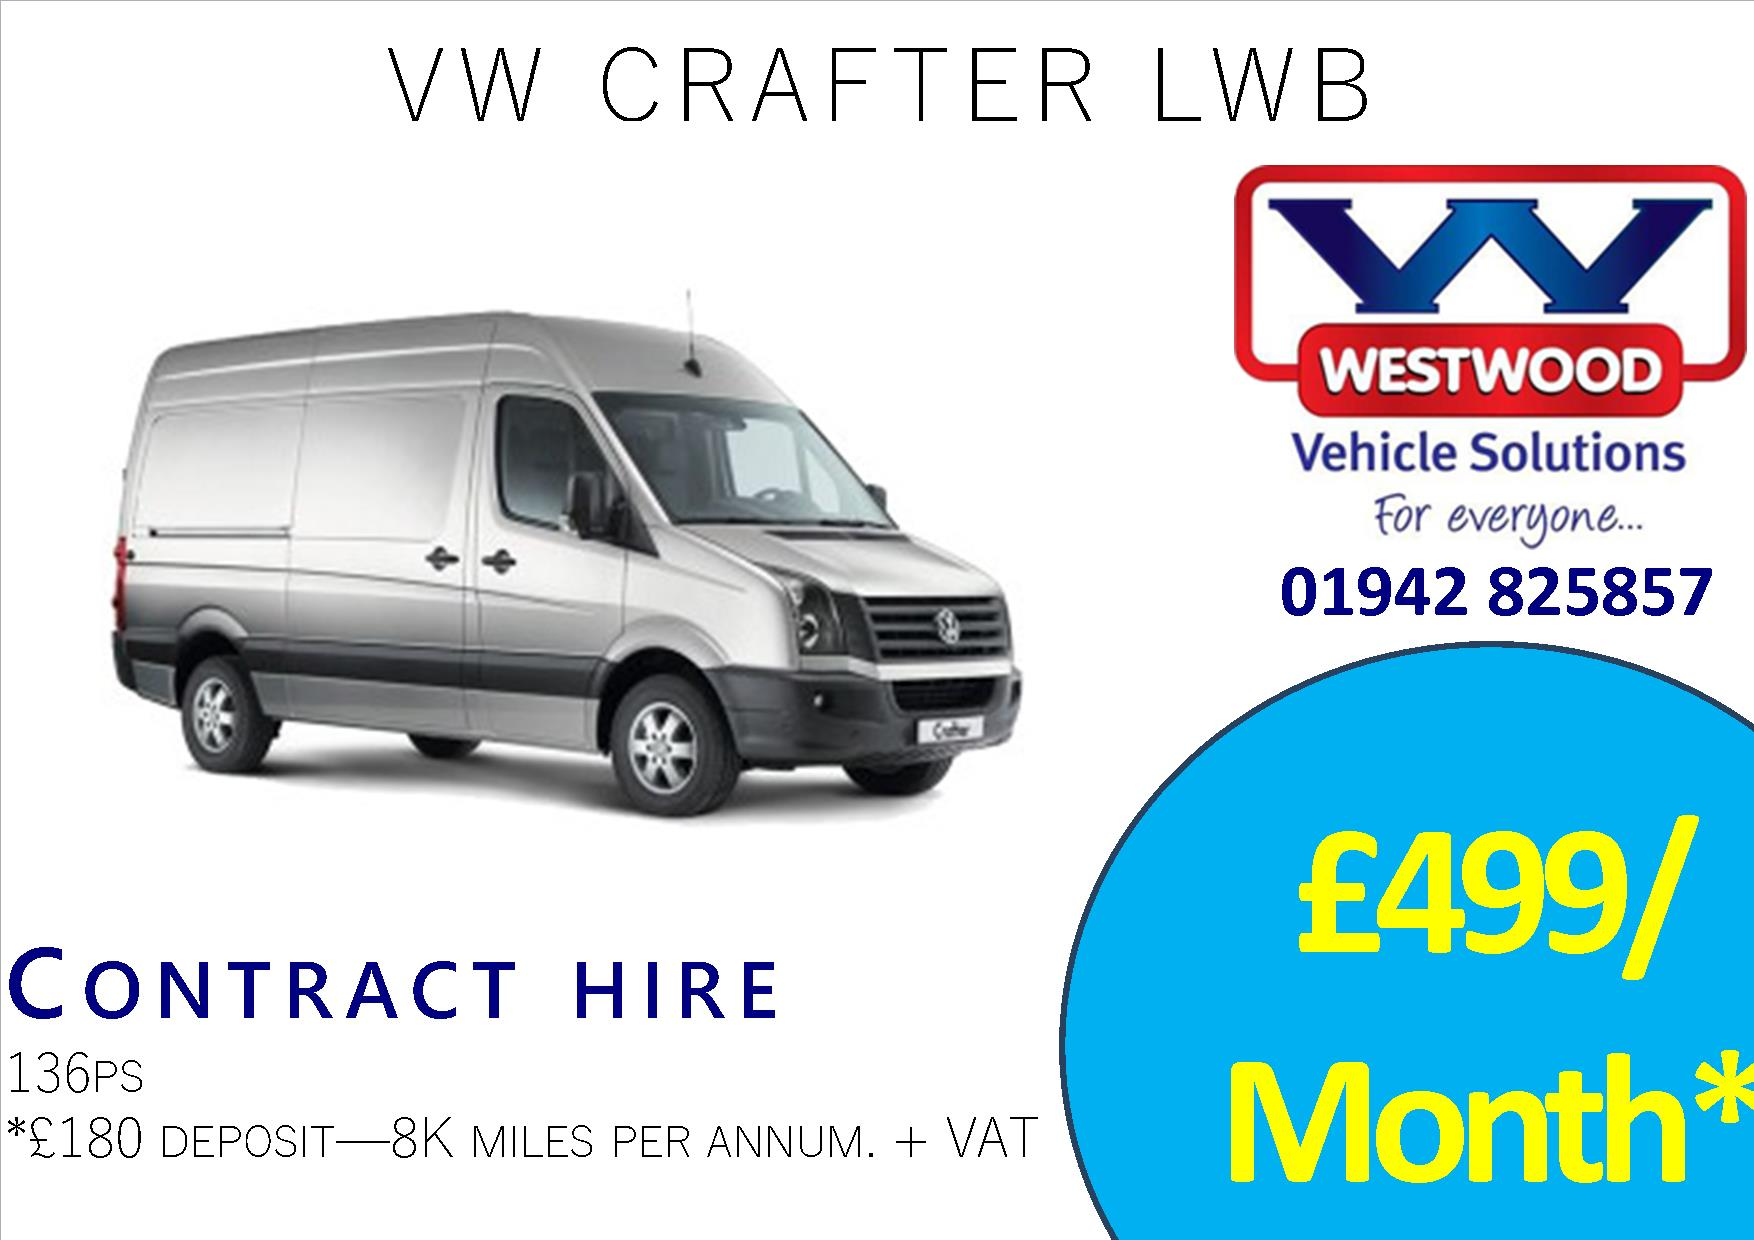 crafter lwb advert